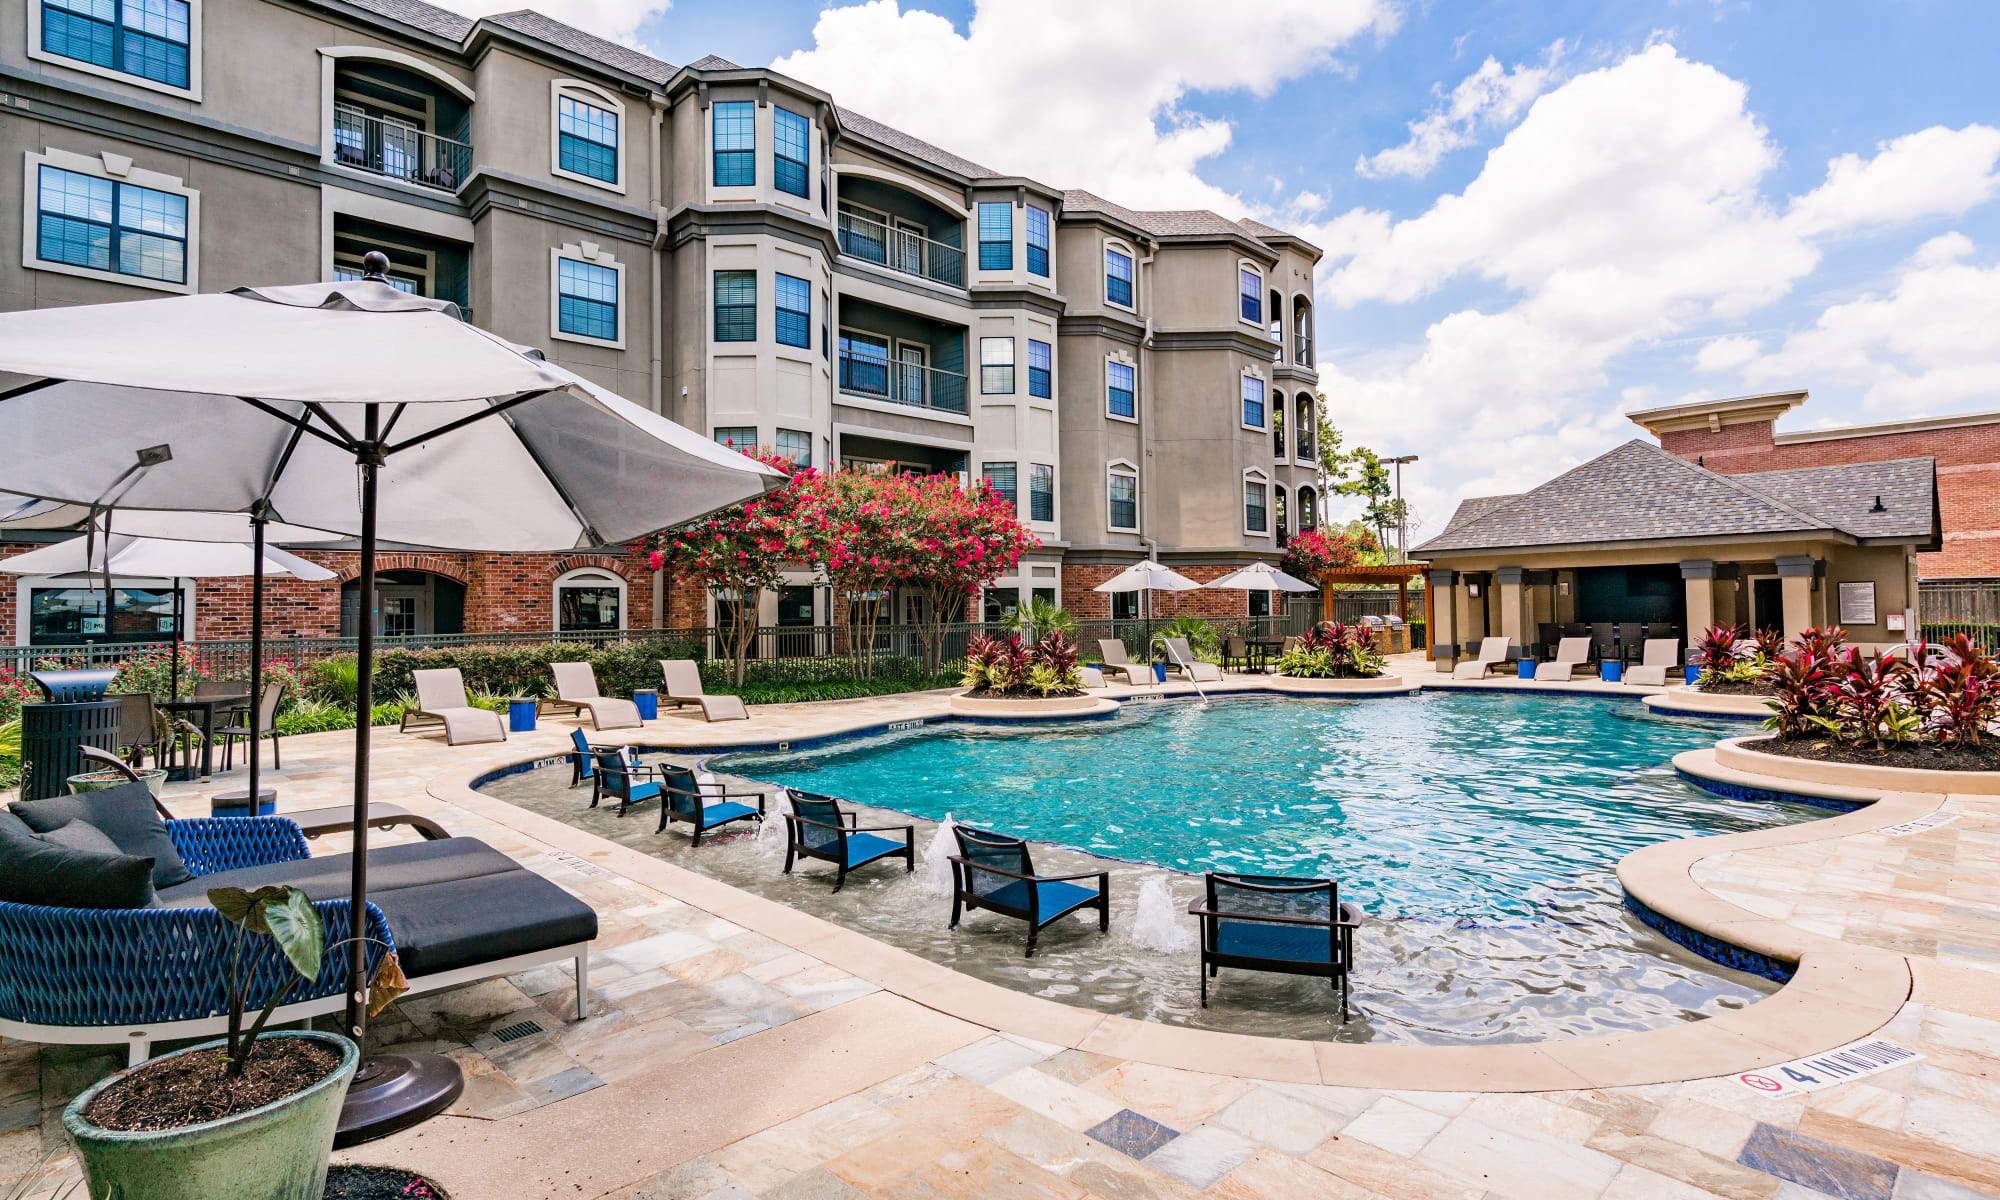 Apartments at The JaXon in Kingwood, Texas